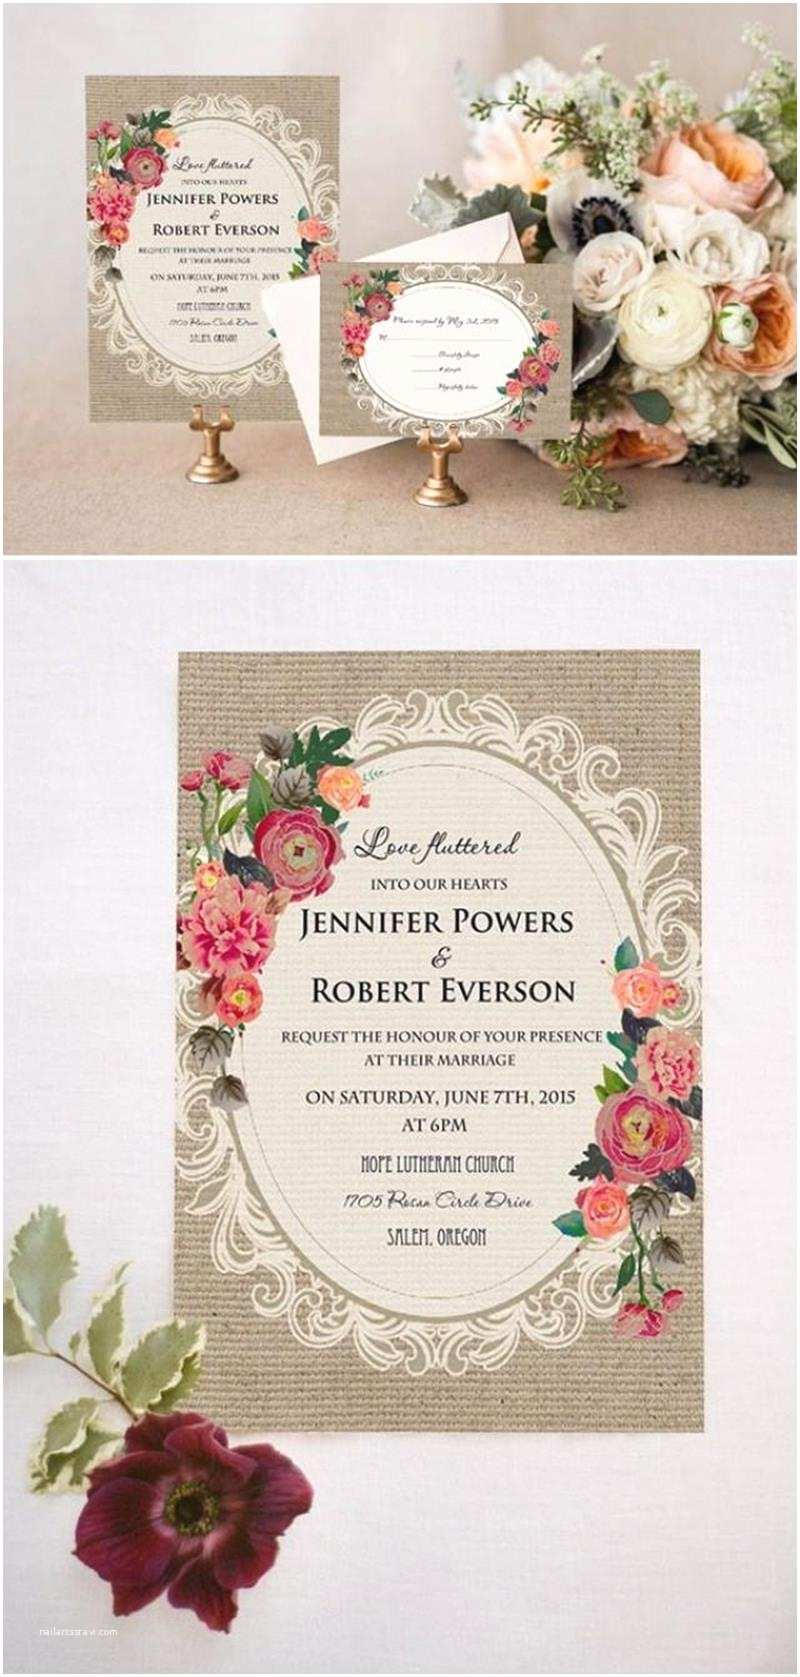 Rustic Vintage Wedding Invitations Rustic Vintage Wedding Invitations 8 Best Inspiration